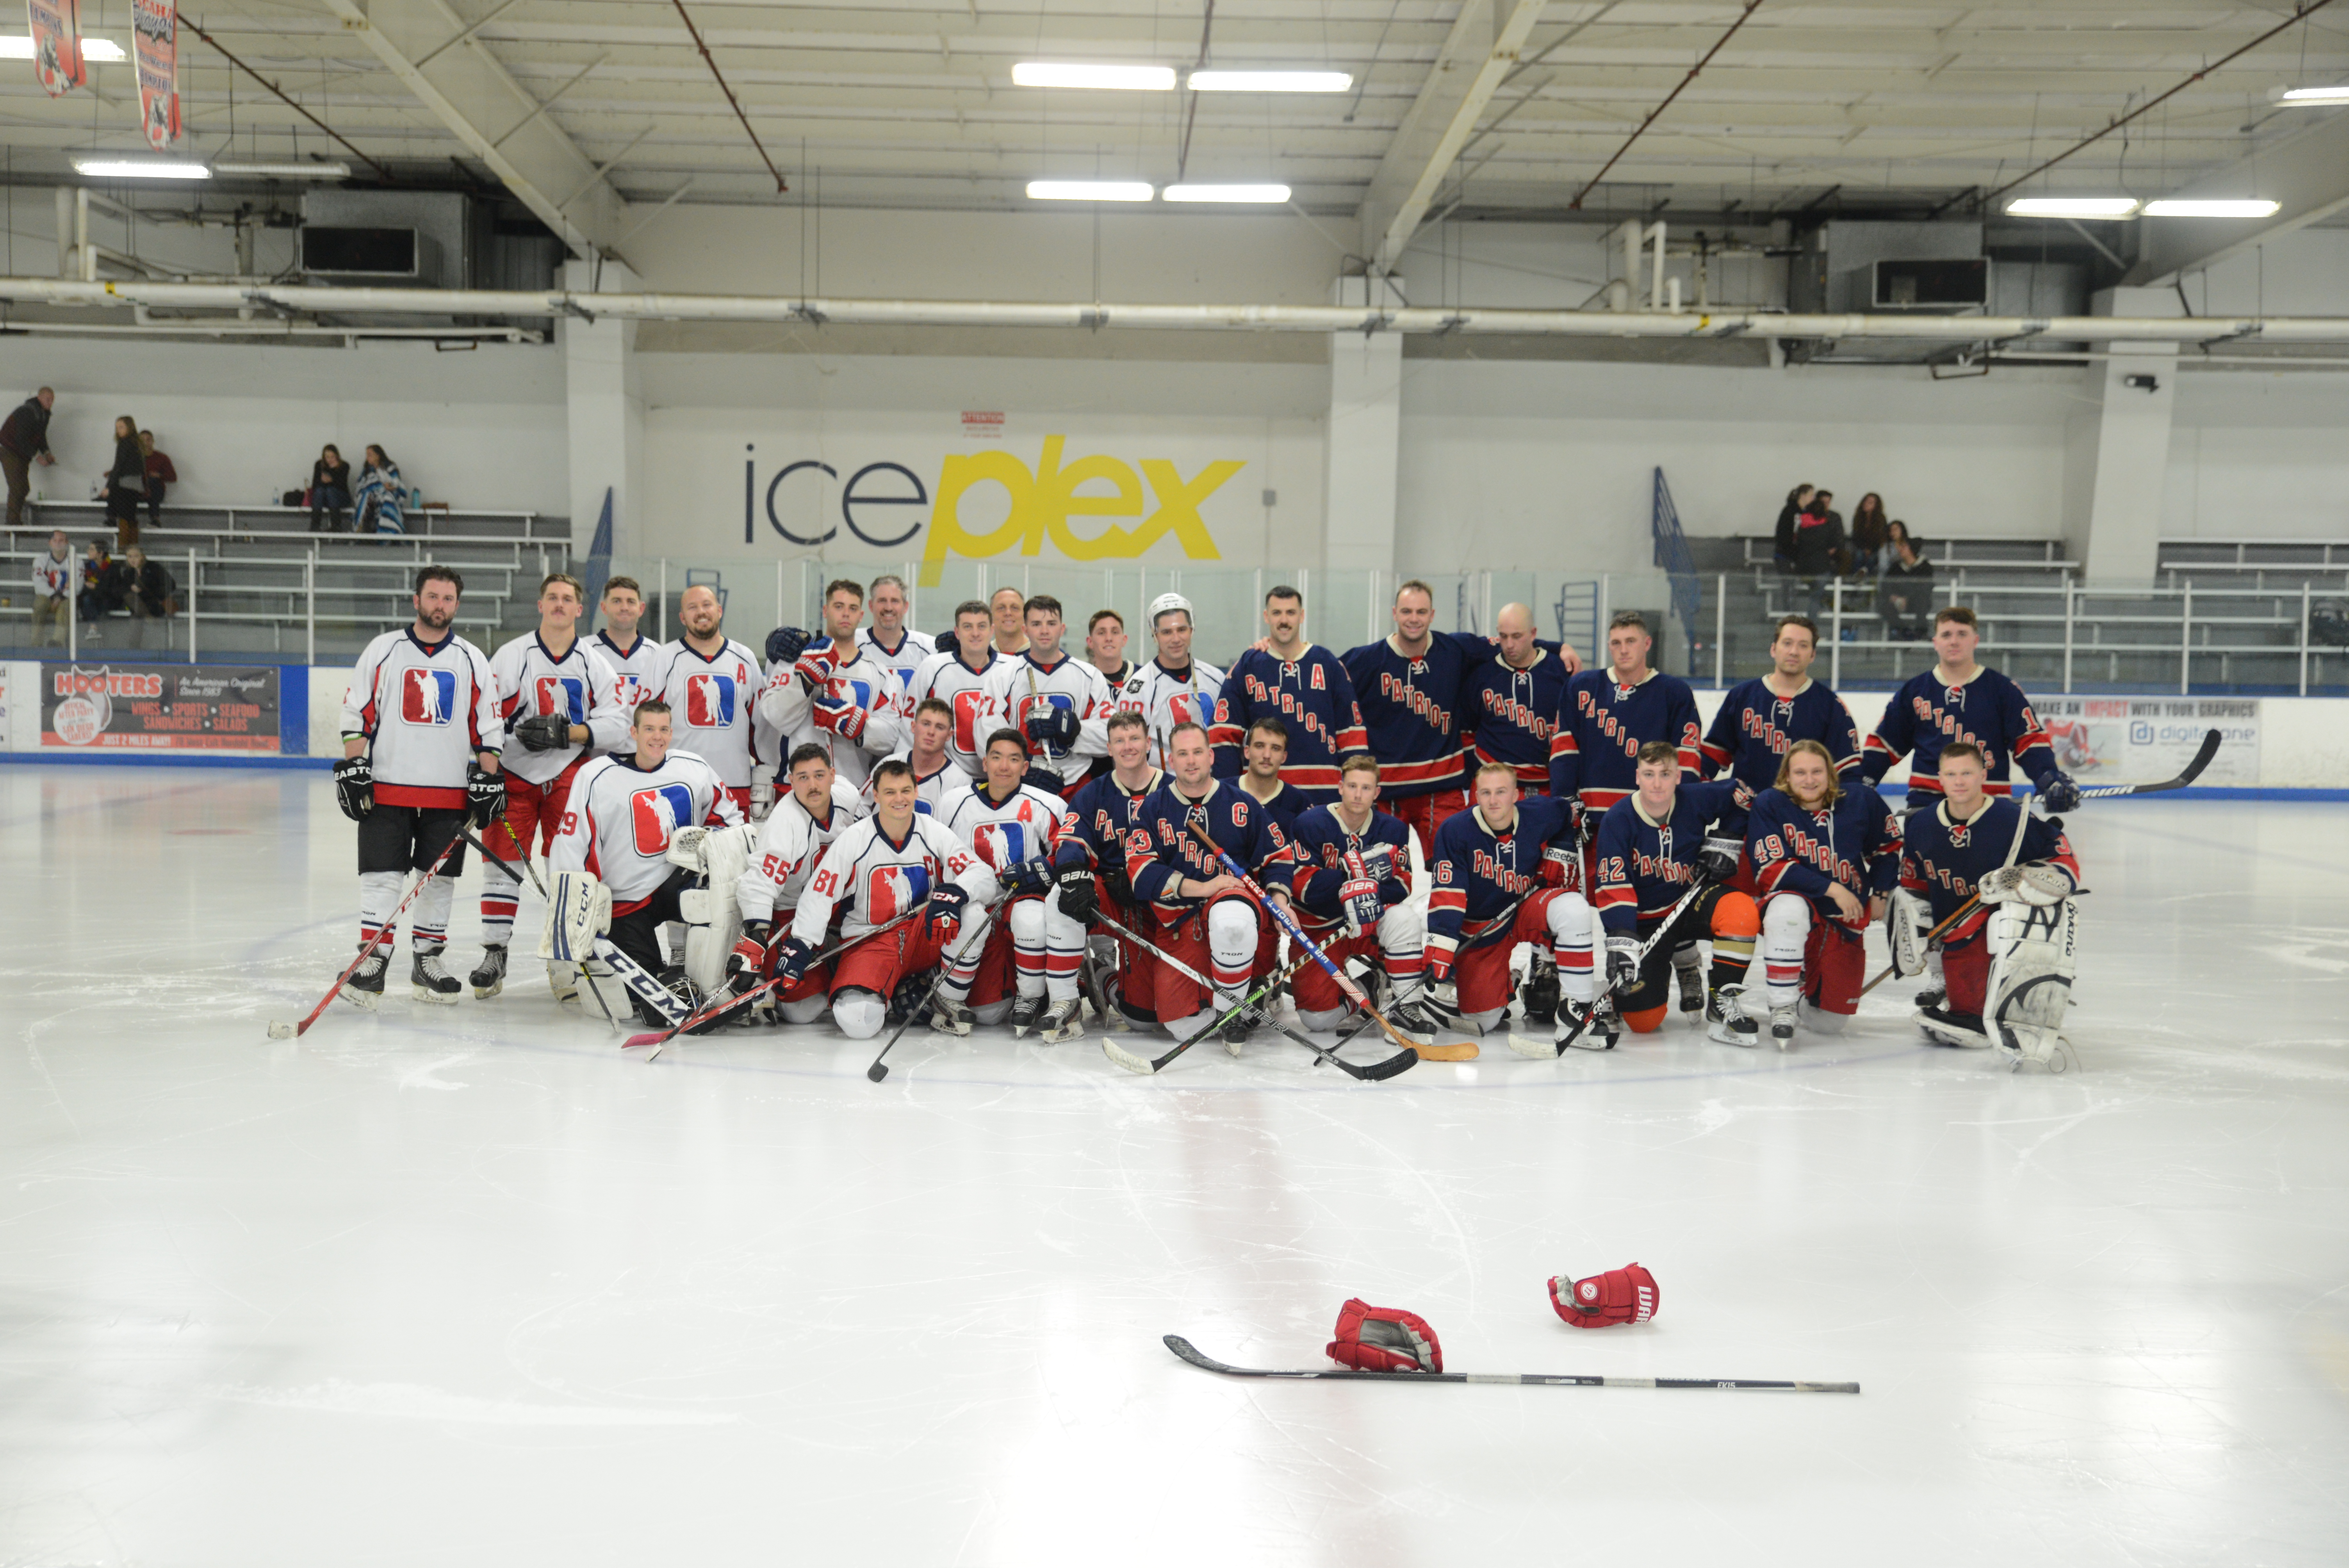 2017 Patriots Hockey All Star Game San Diego Sports Domination